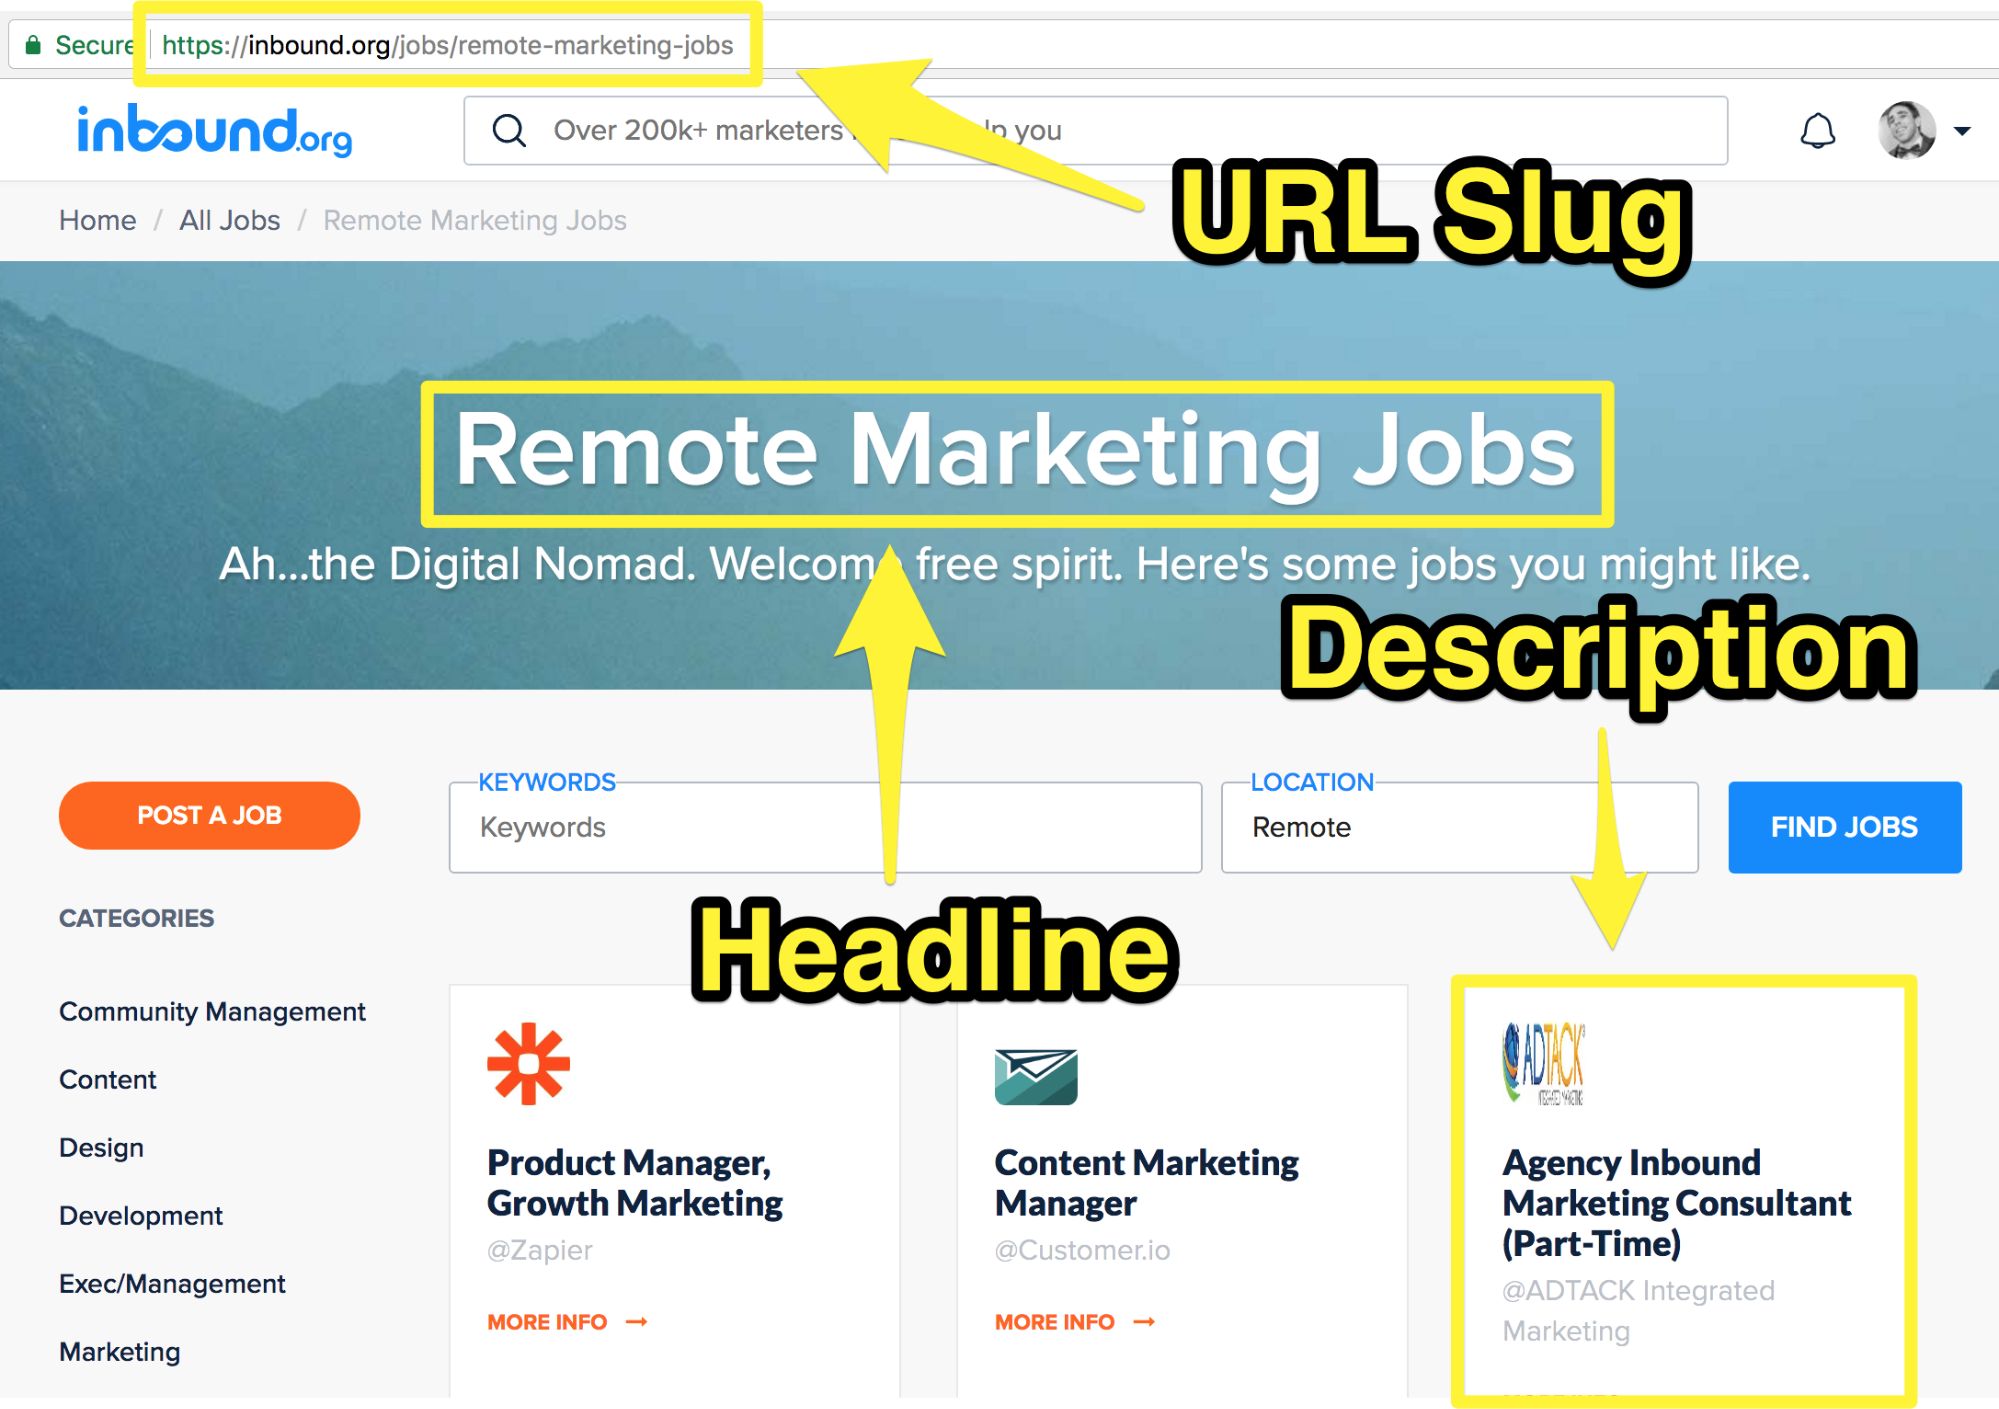 Screenshot showing an inbound.org page for remote marketing jobs